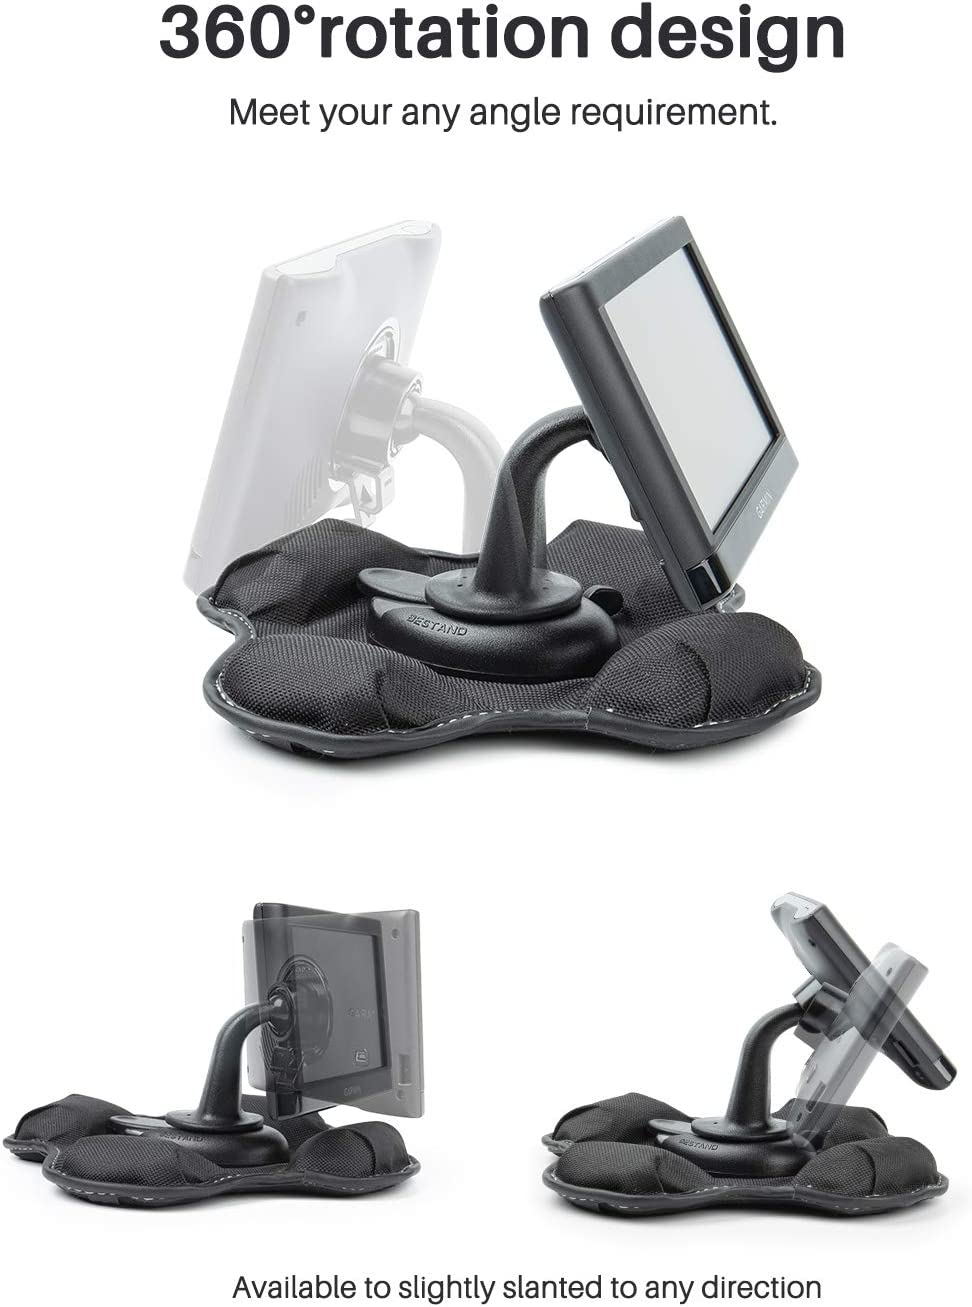 Bestand GPS Dashboard Mount, Portable Friction Mount for Garmin 700/600/300/200 Series and for New Nuvi Series: GPS & Navigation